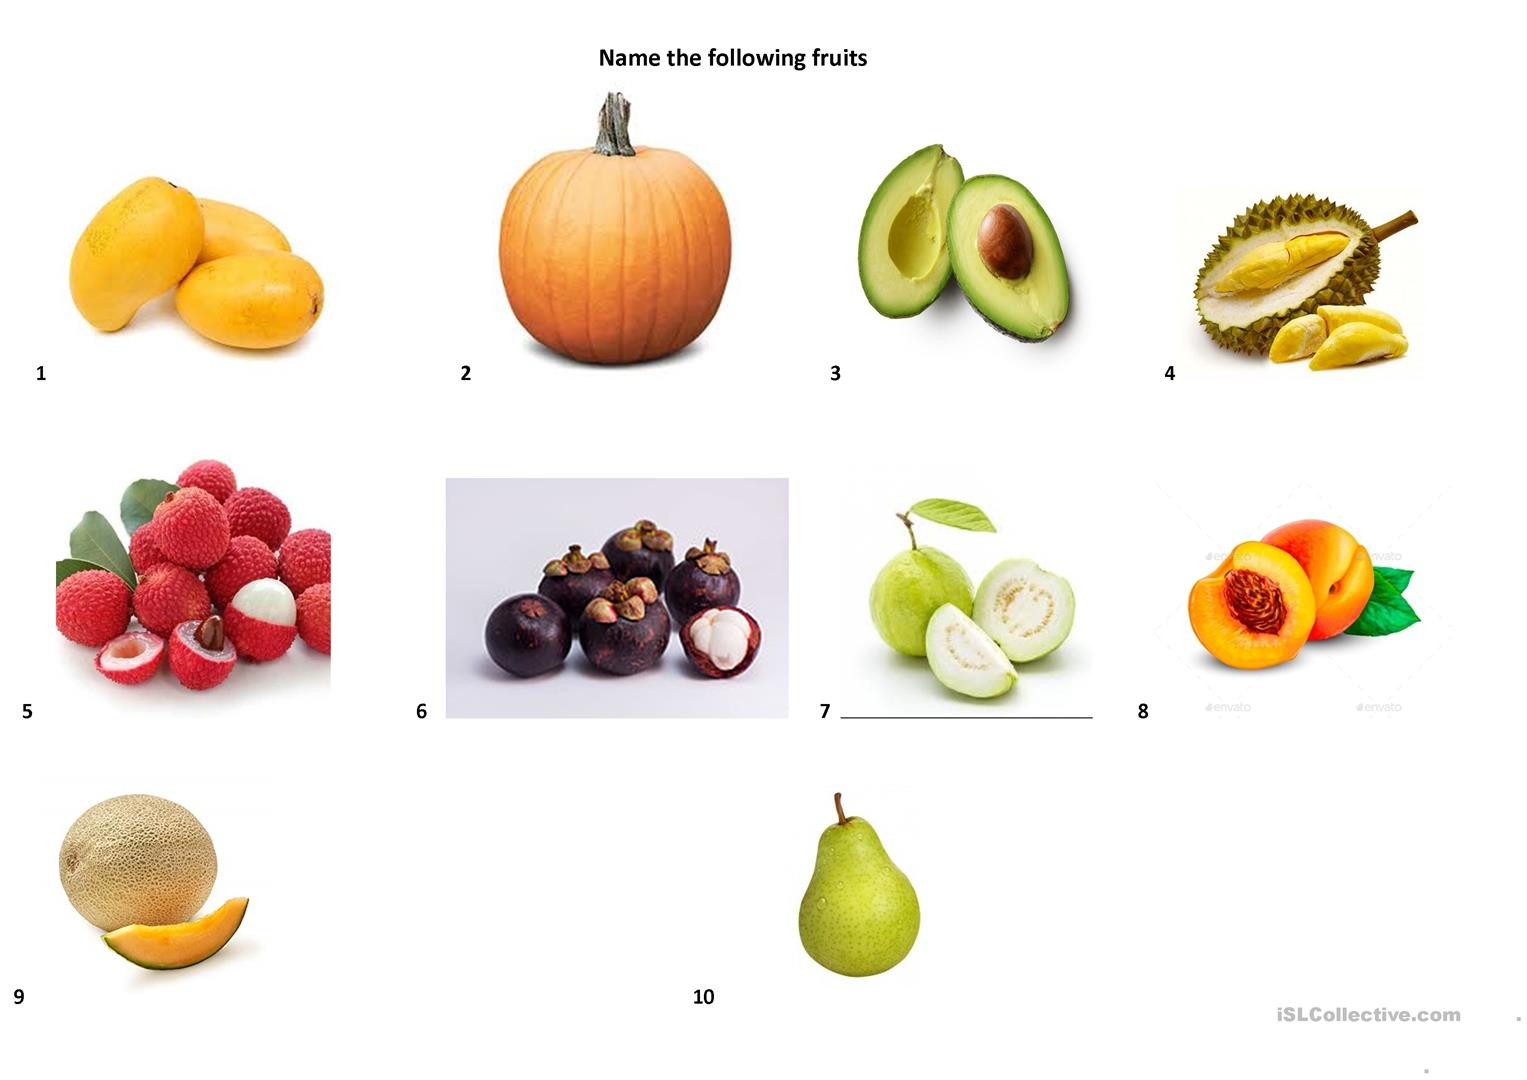 Name These Fruits